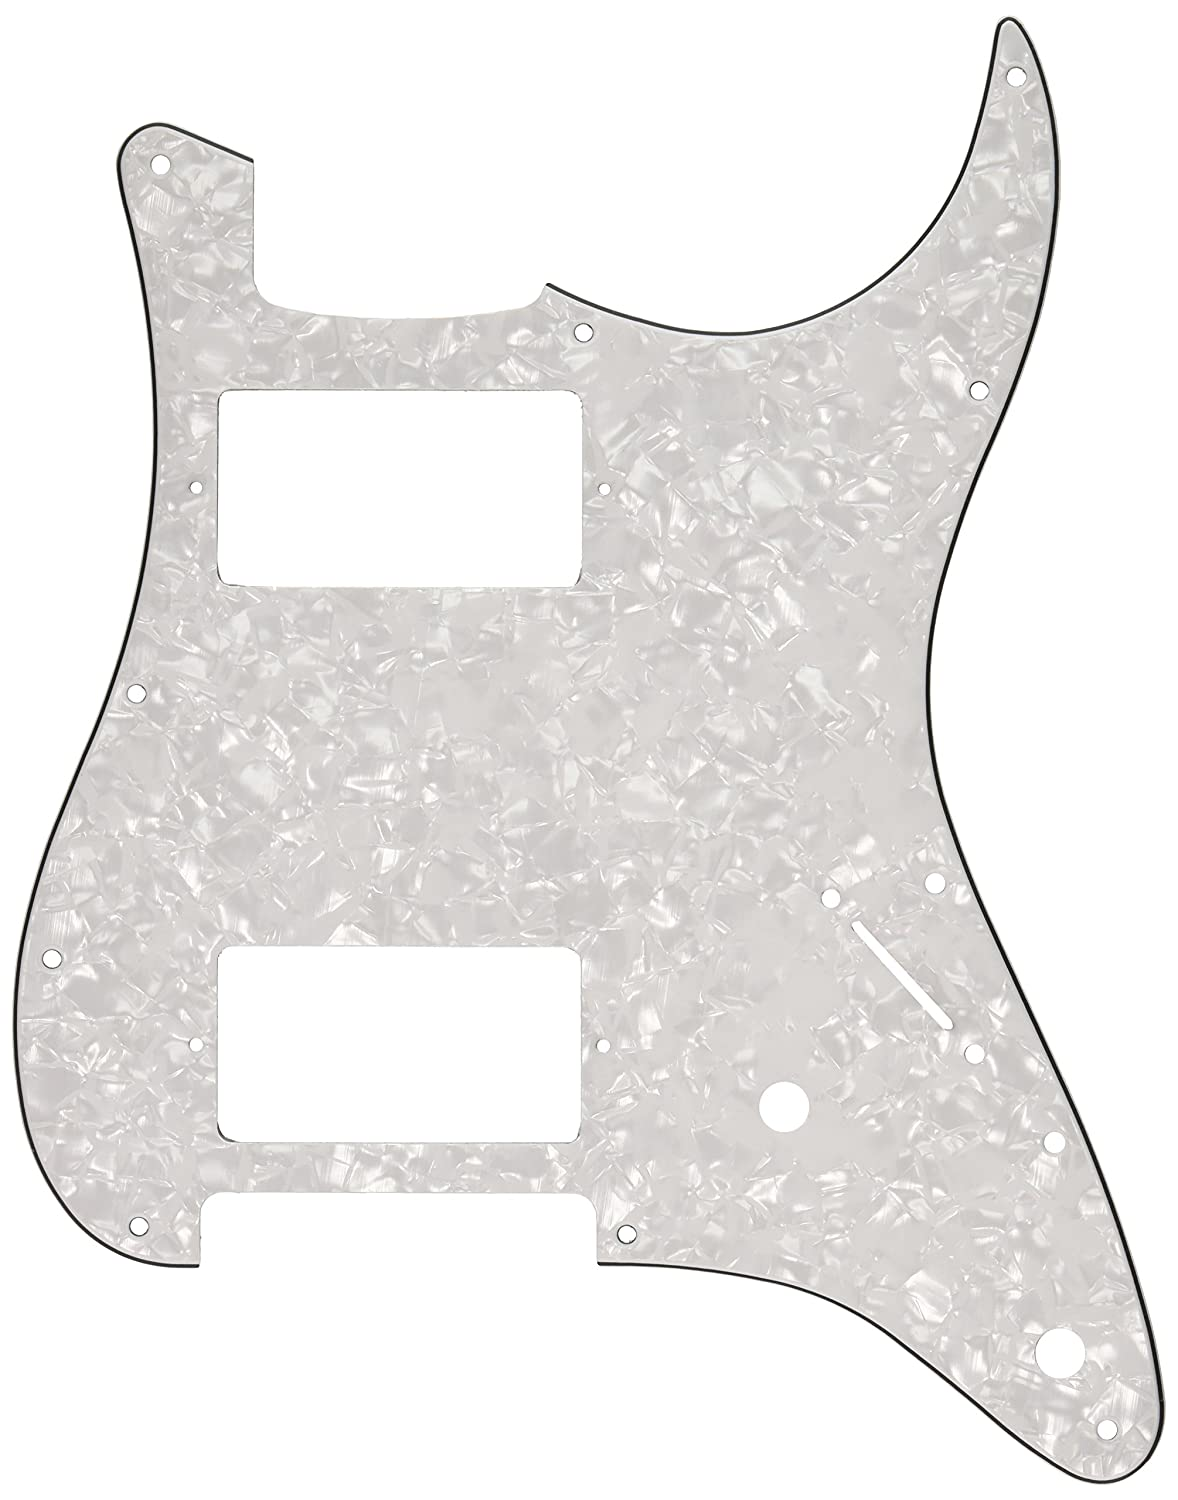 Kmise MI0136 Guitar Pickguard HH 3 Ply White Pearl for Fender Strat Replacement